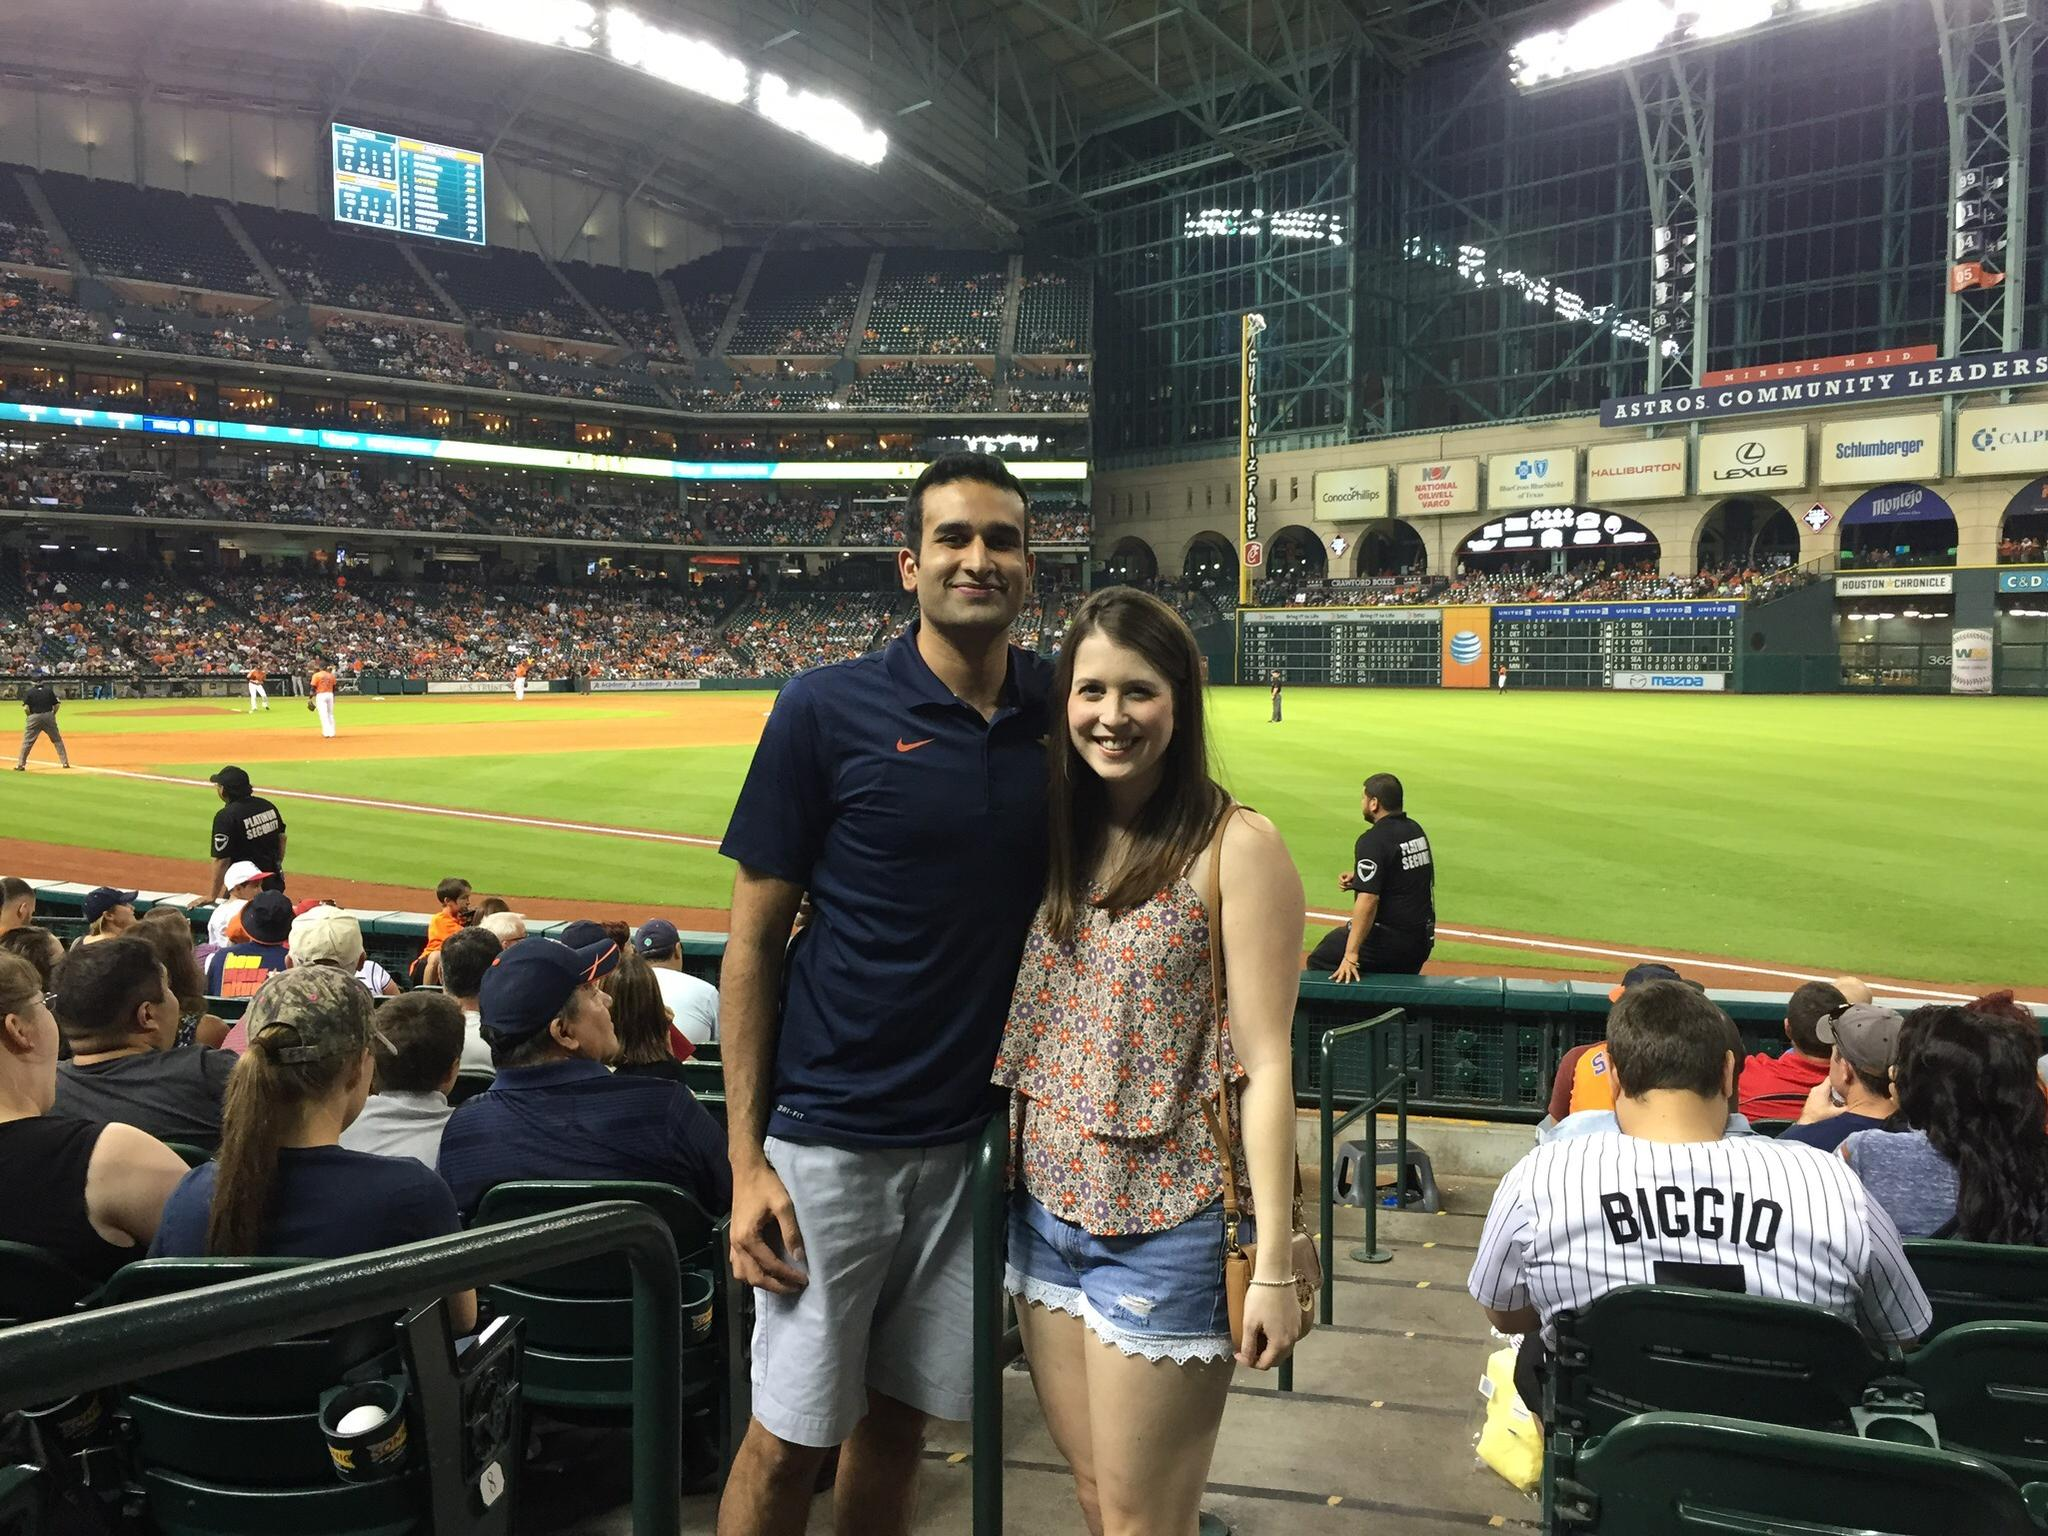 The first date Meredith ever took Shawn on was a Astros baseball game - he was smitten!!